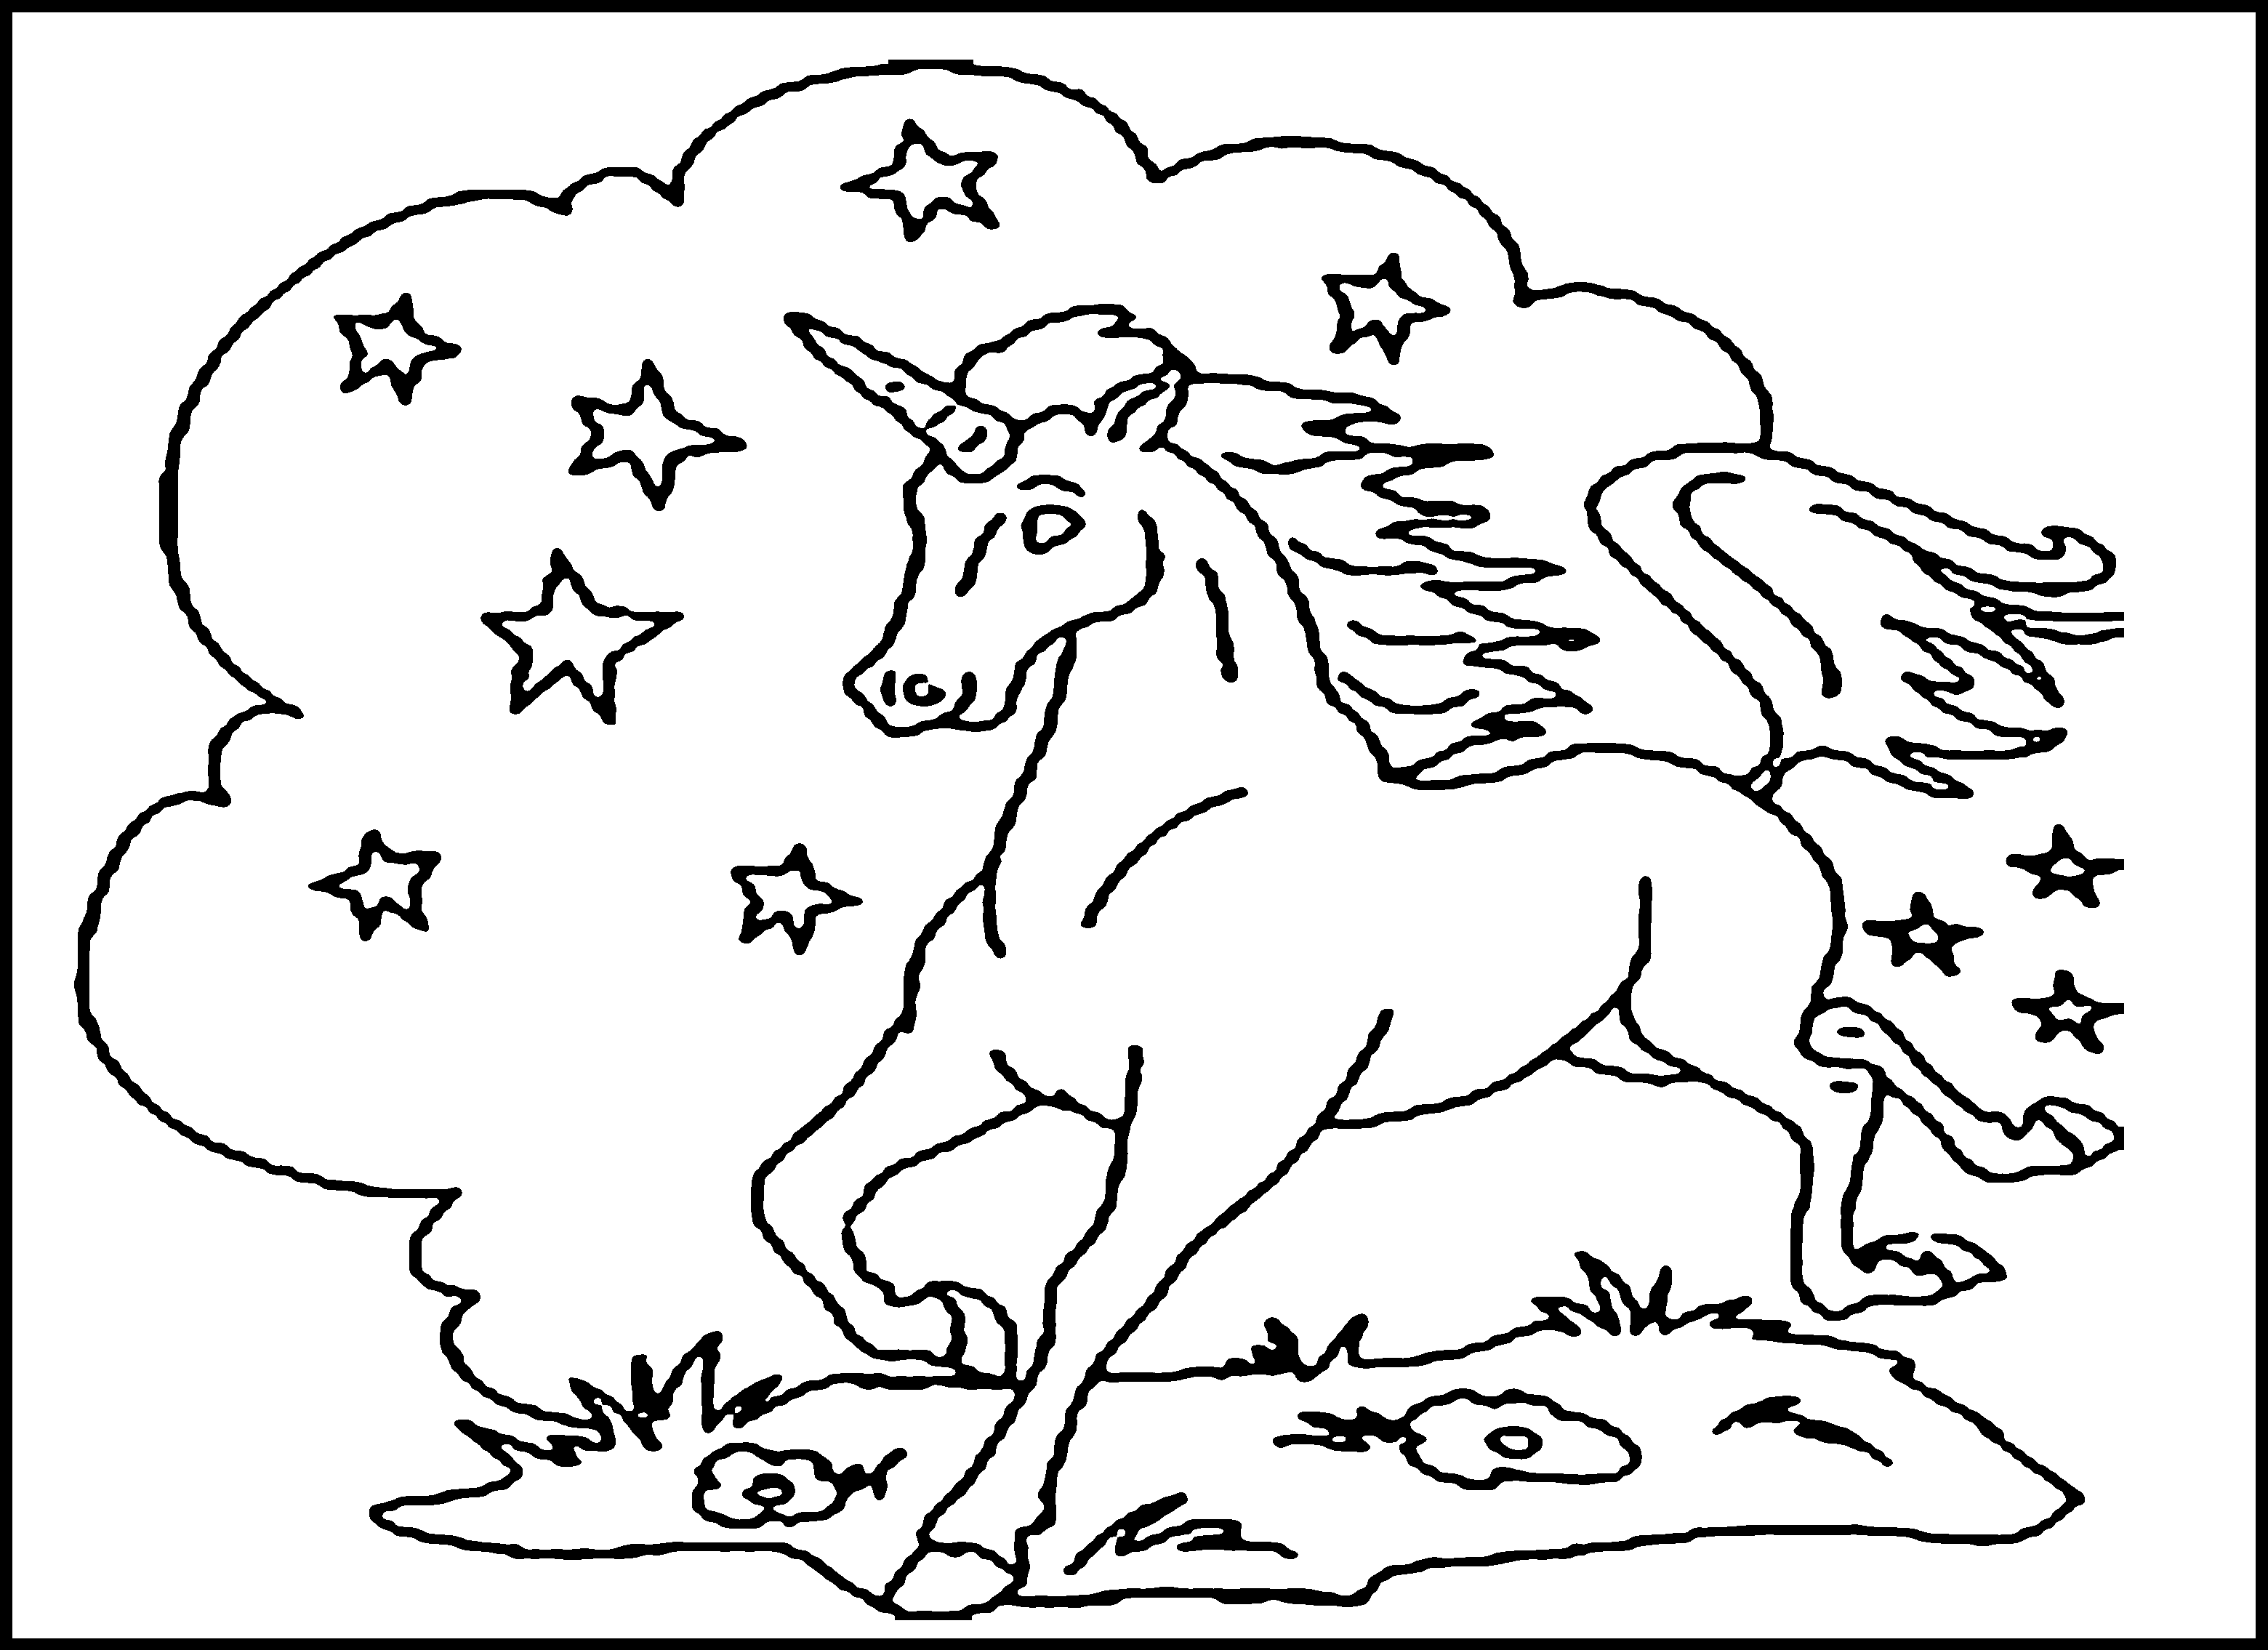 Printable coloring pages for 12 year olds - Unicorn Printable Coloring Pages